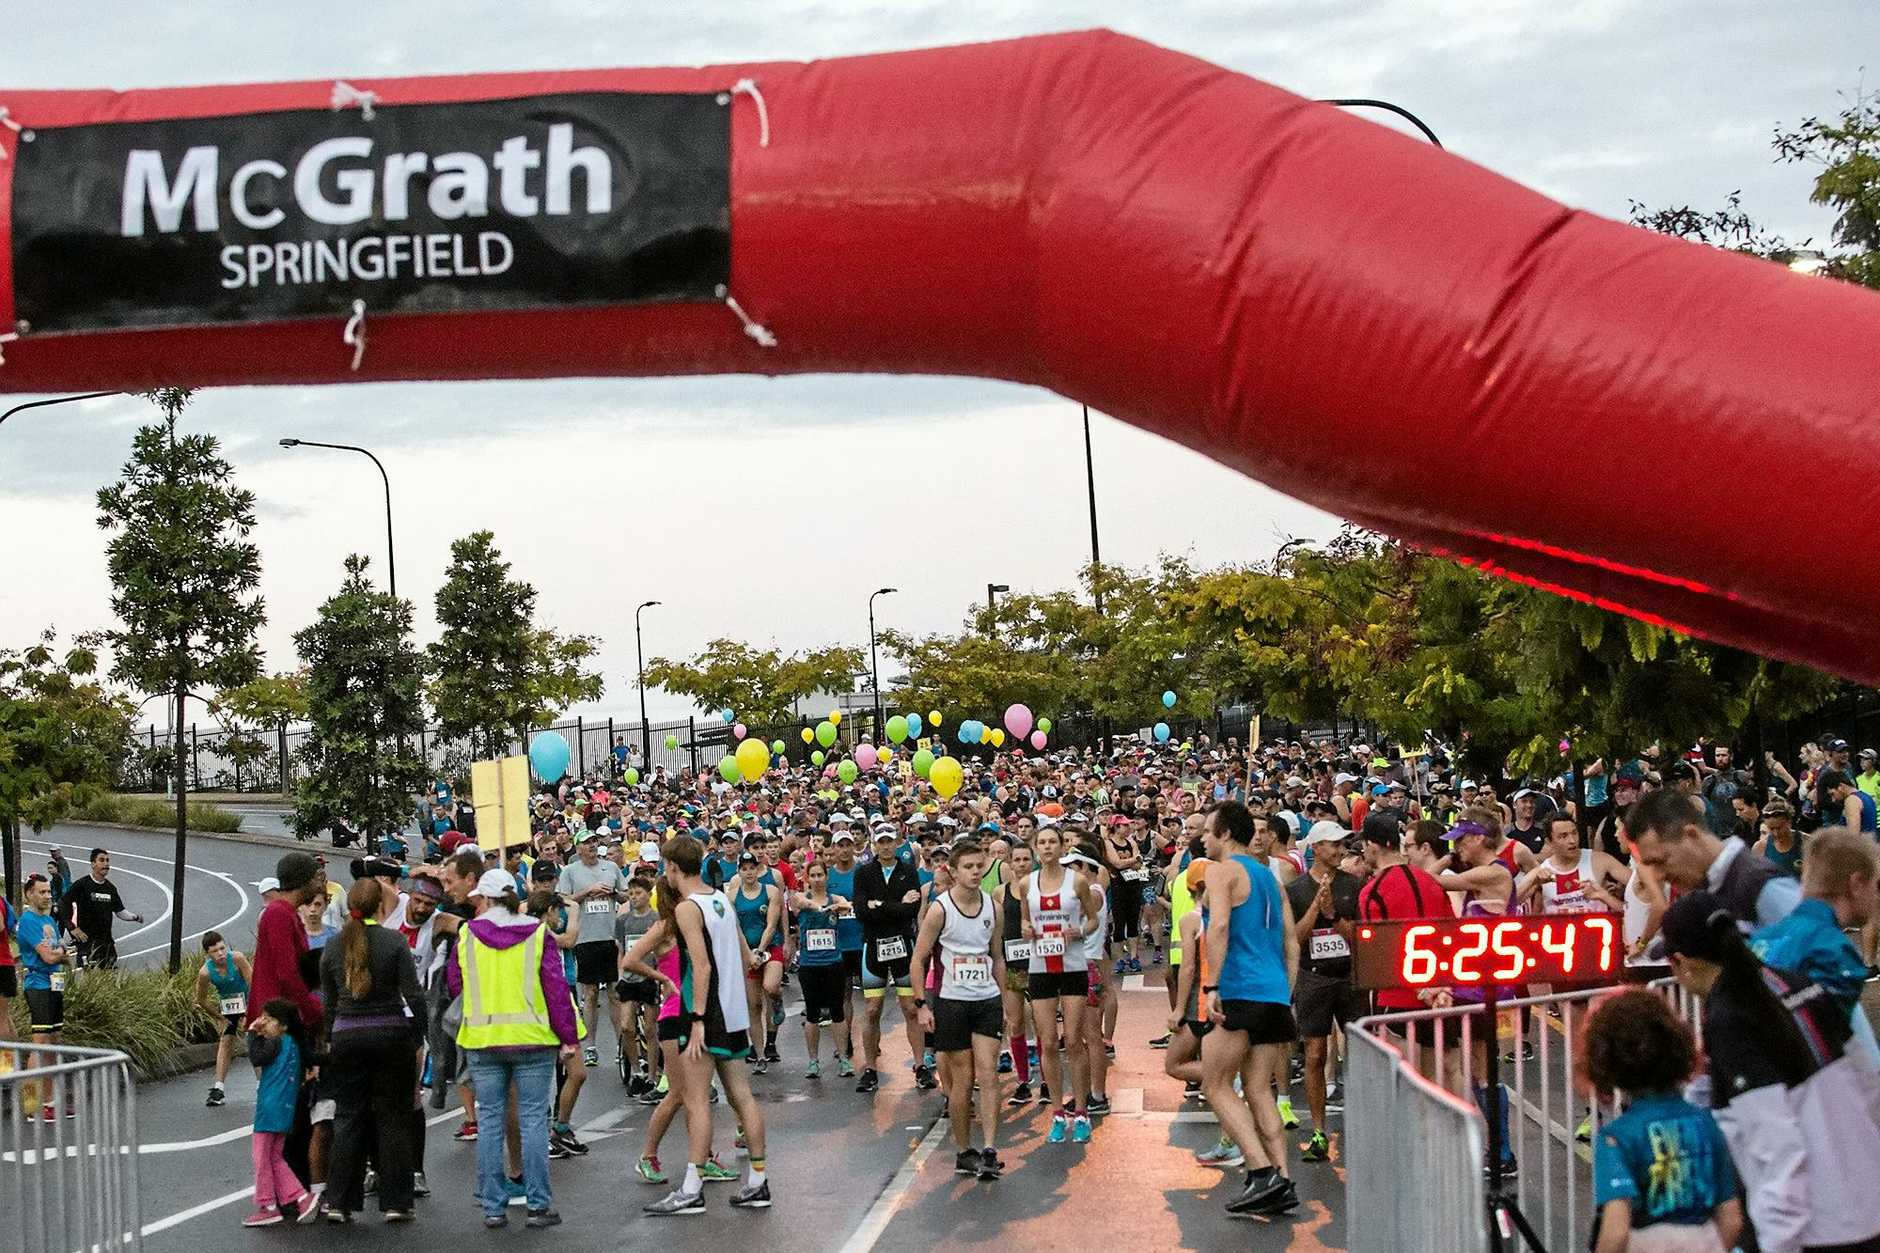 Runners prepare to start the inaugural Greater Springfield Marathon events on Sunday morning.